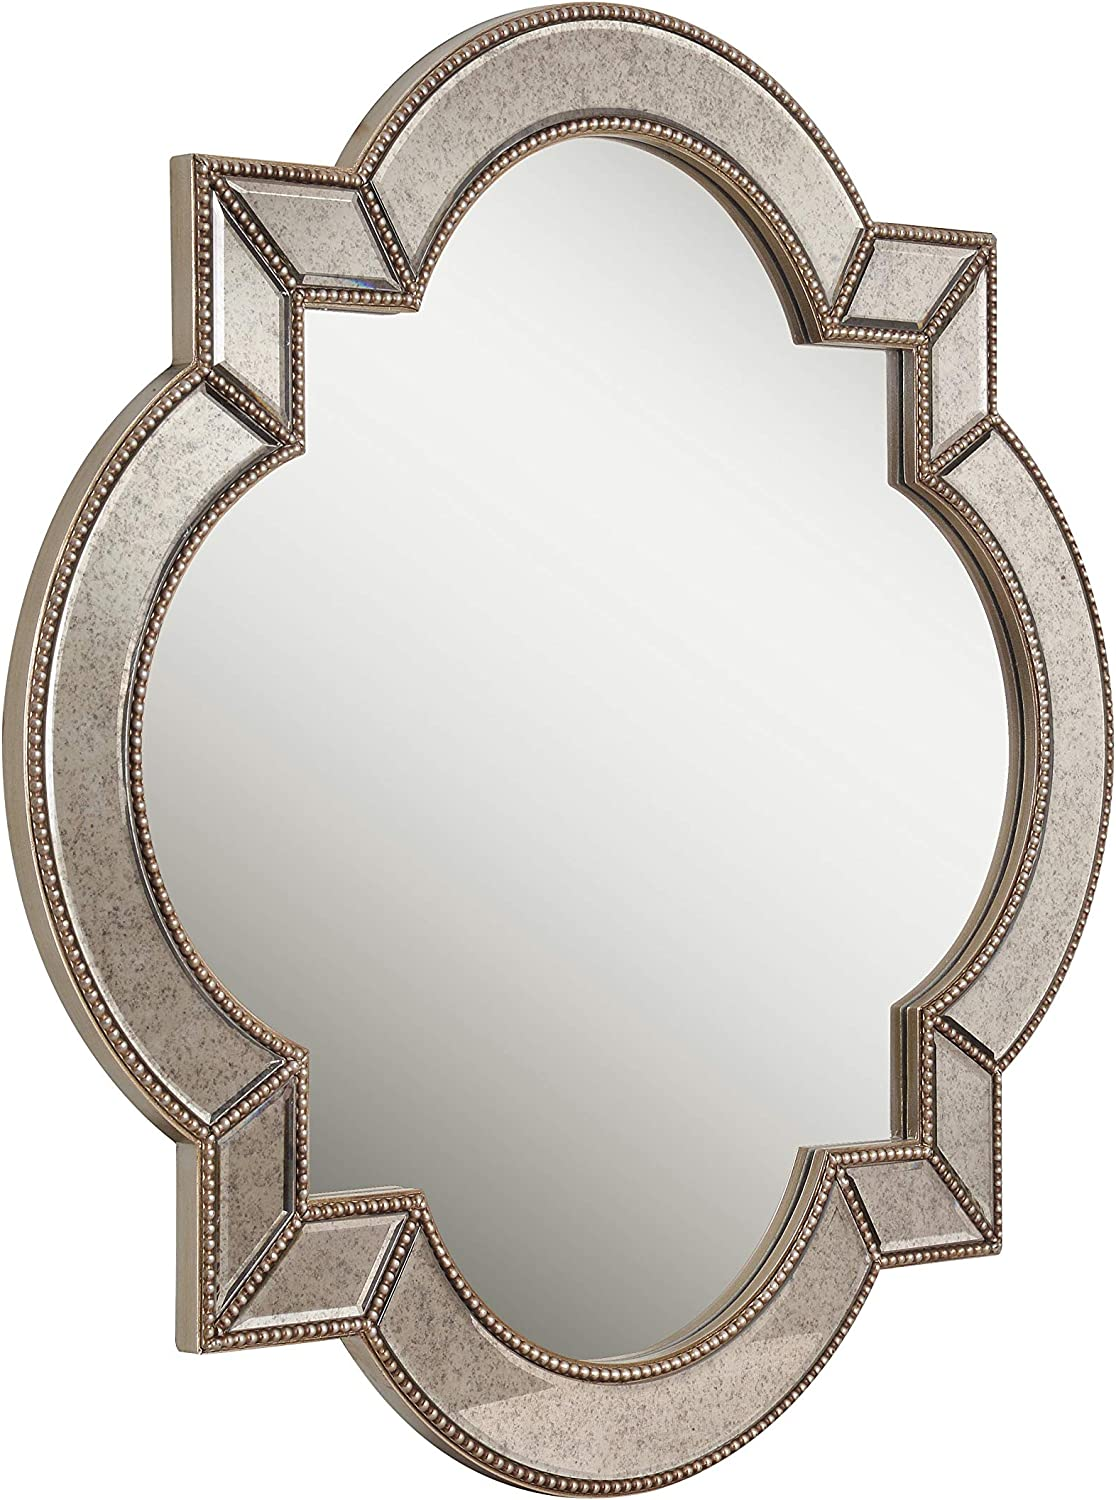 Antique Mirror with Champagne Beads Kenroy Home 60425 Christine Home D/écor